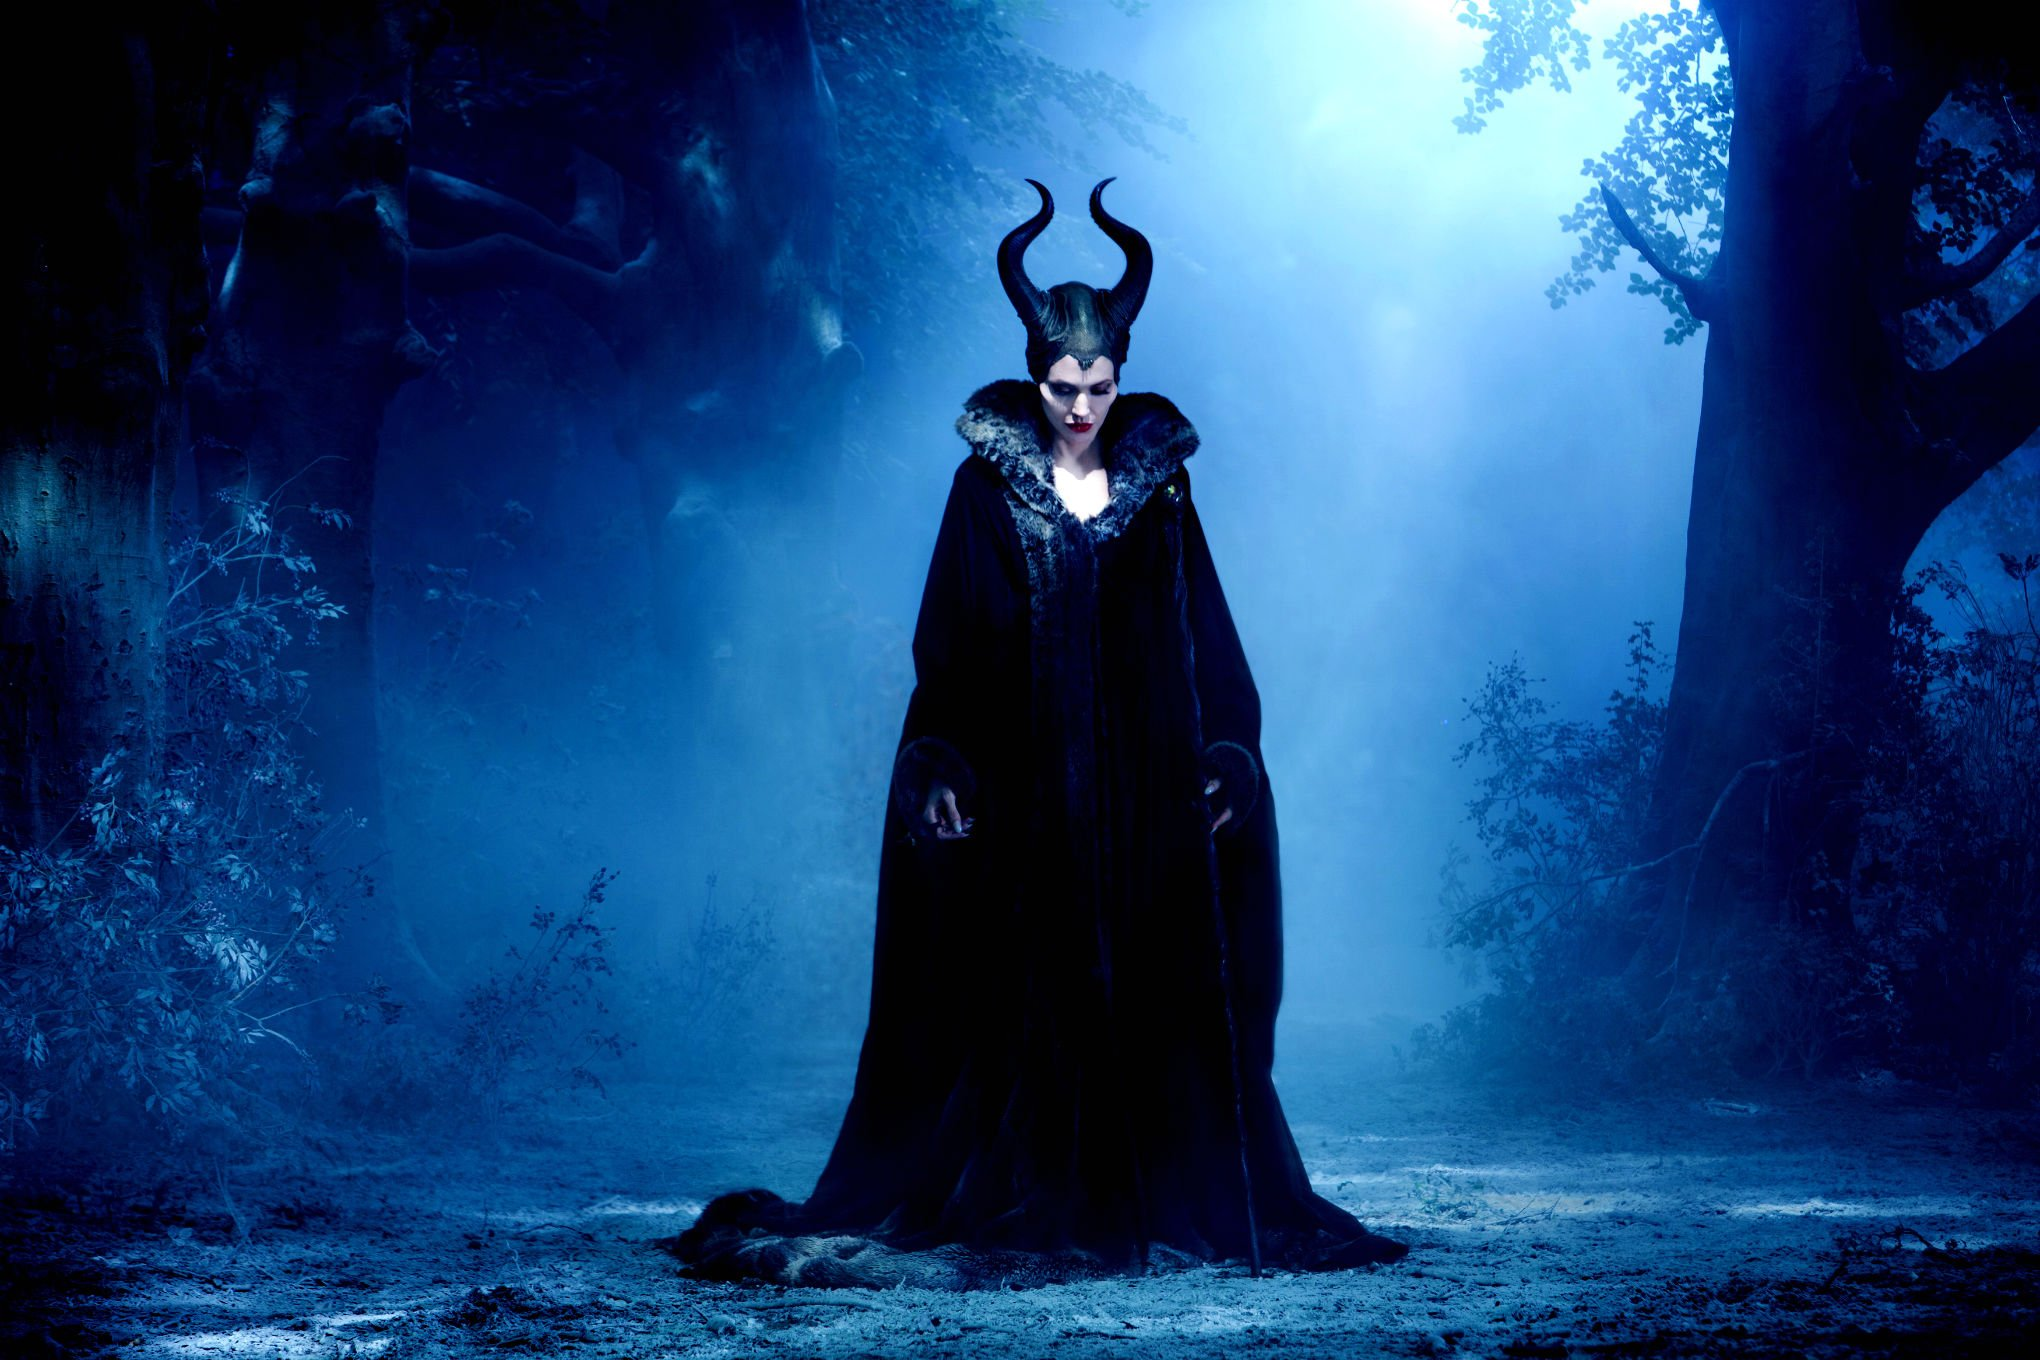 Disney Movies Hd Wallpapers: 9 HD Maleficent Movie Wallpapers